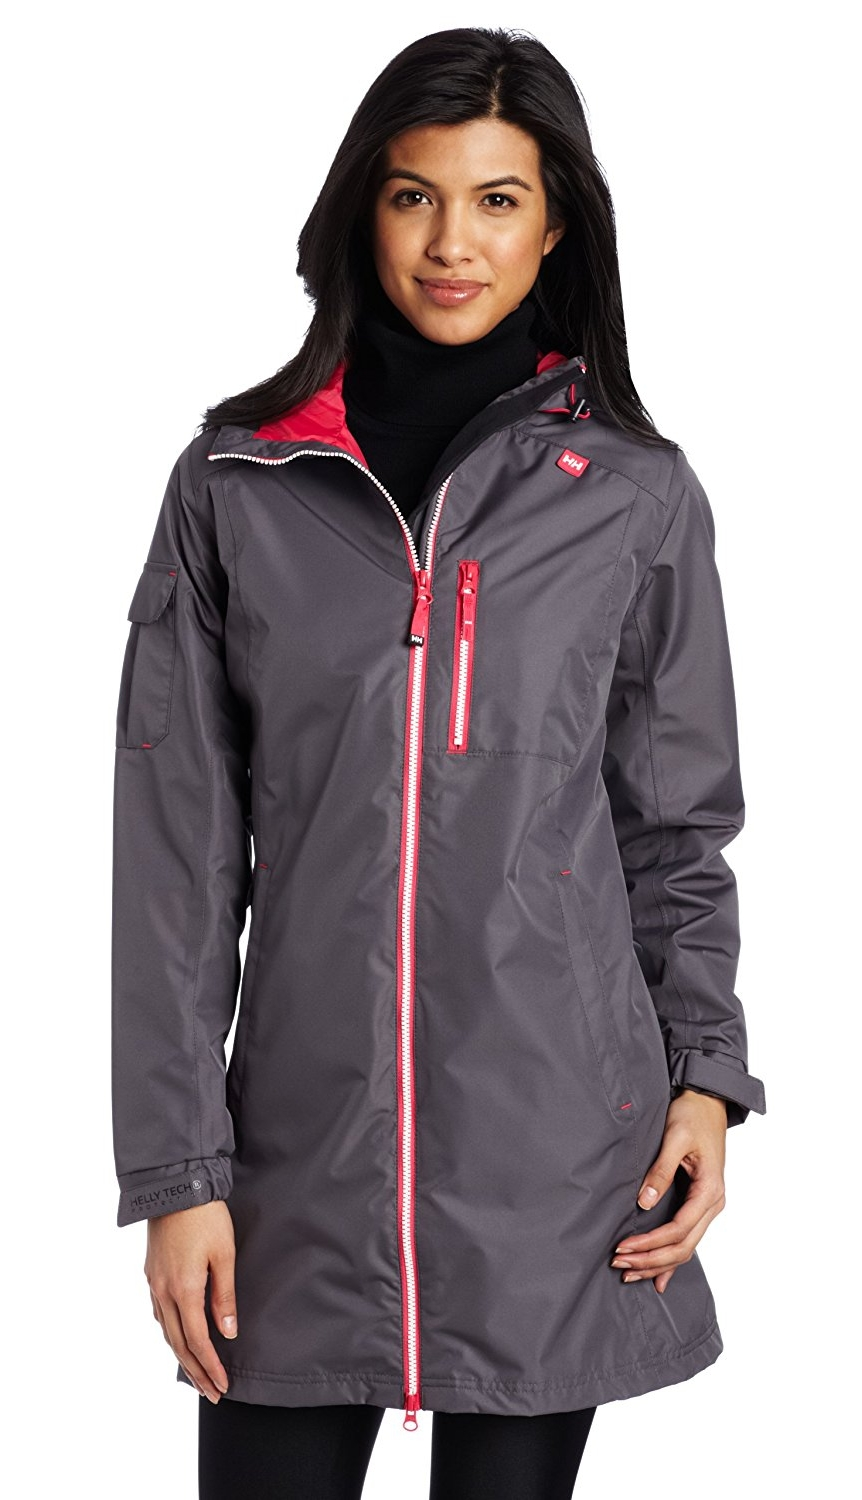 The Belfast Waterproof Jacket